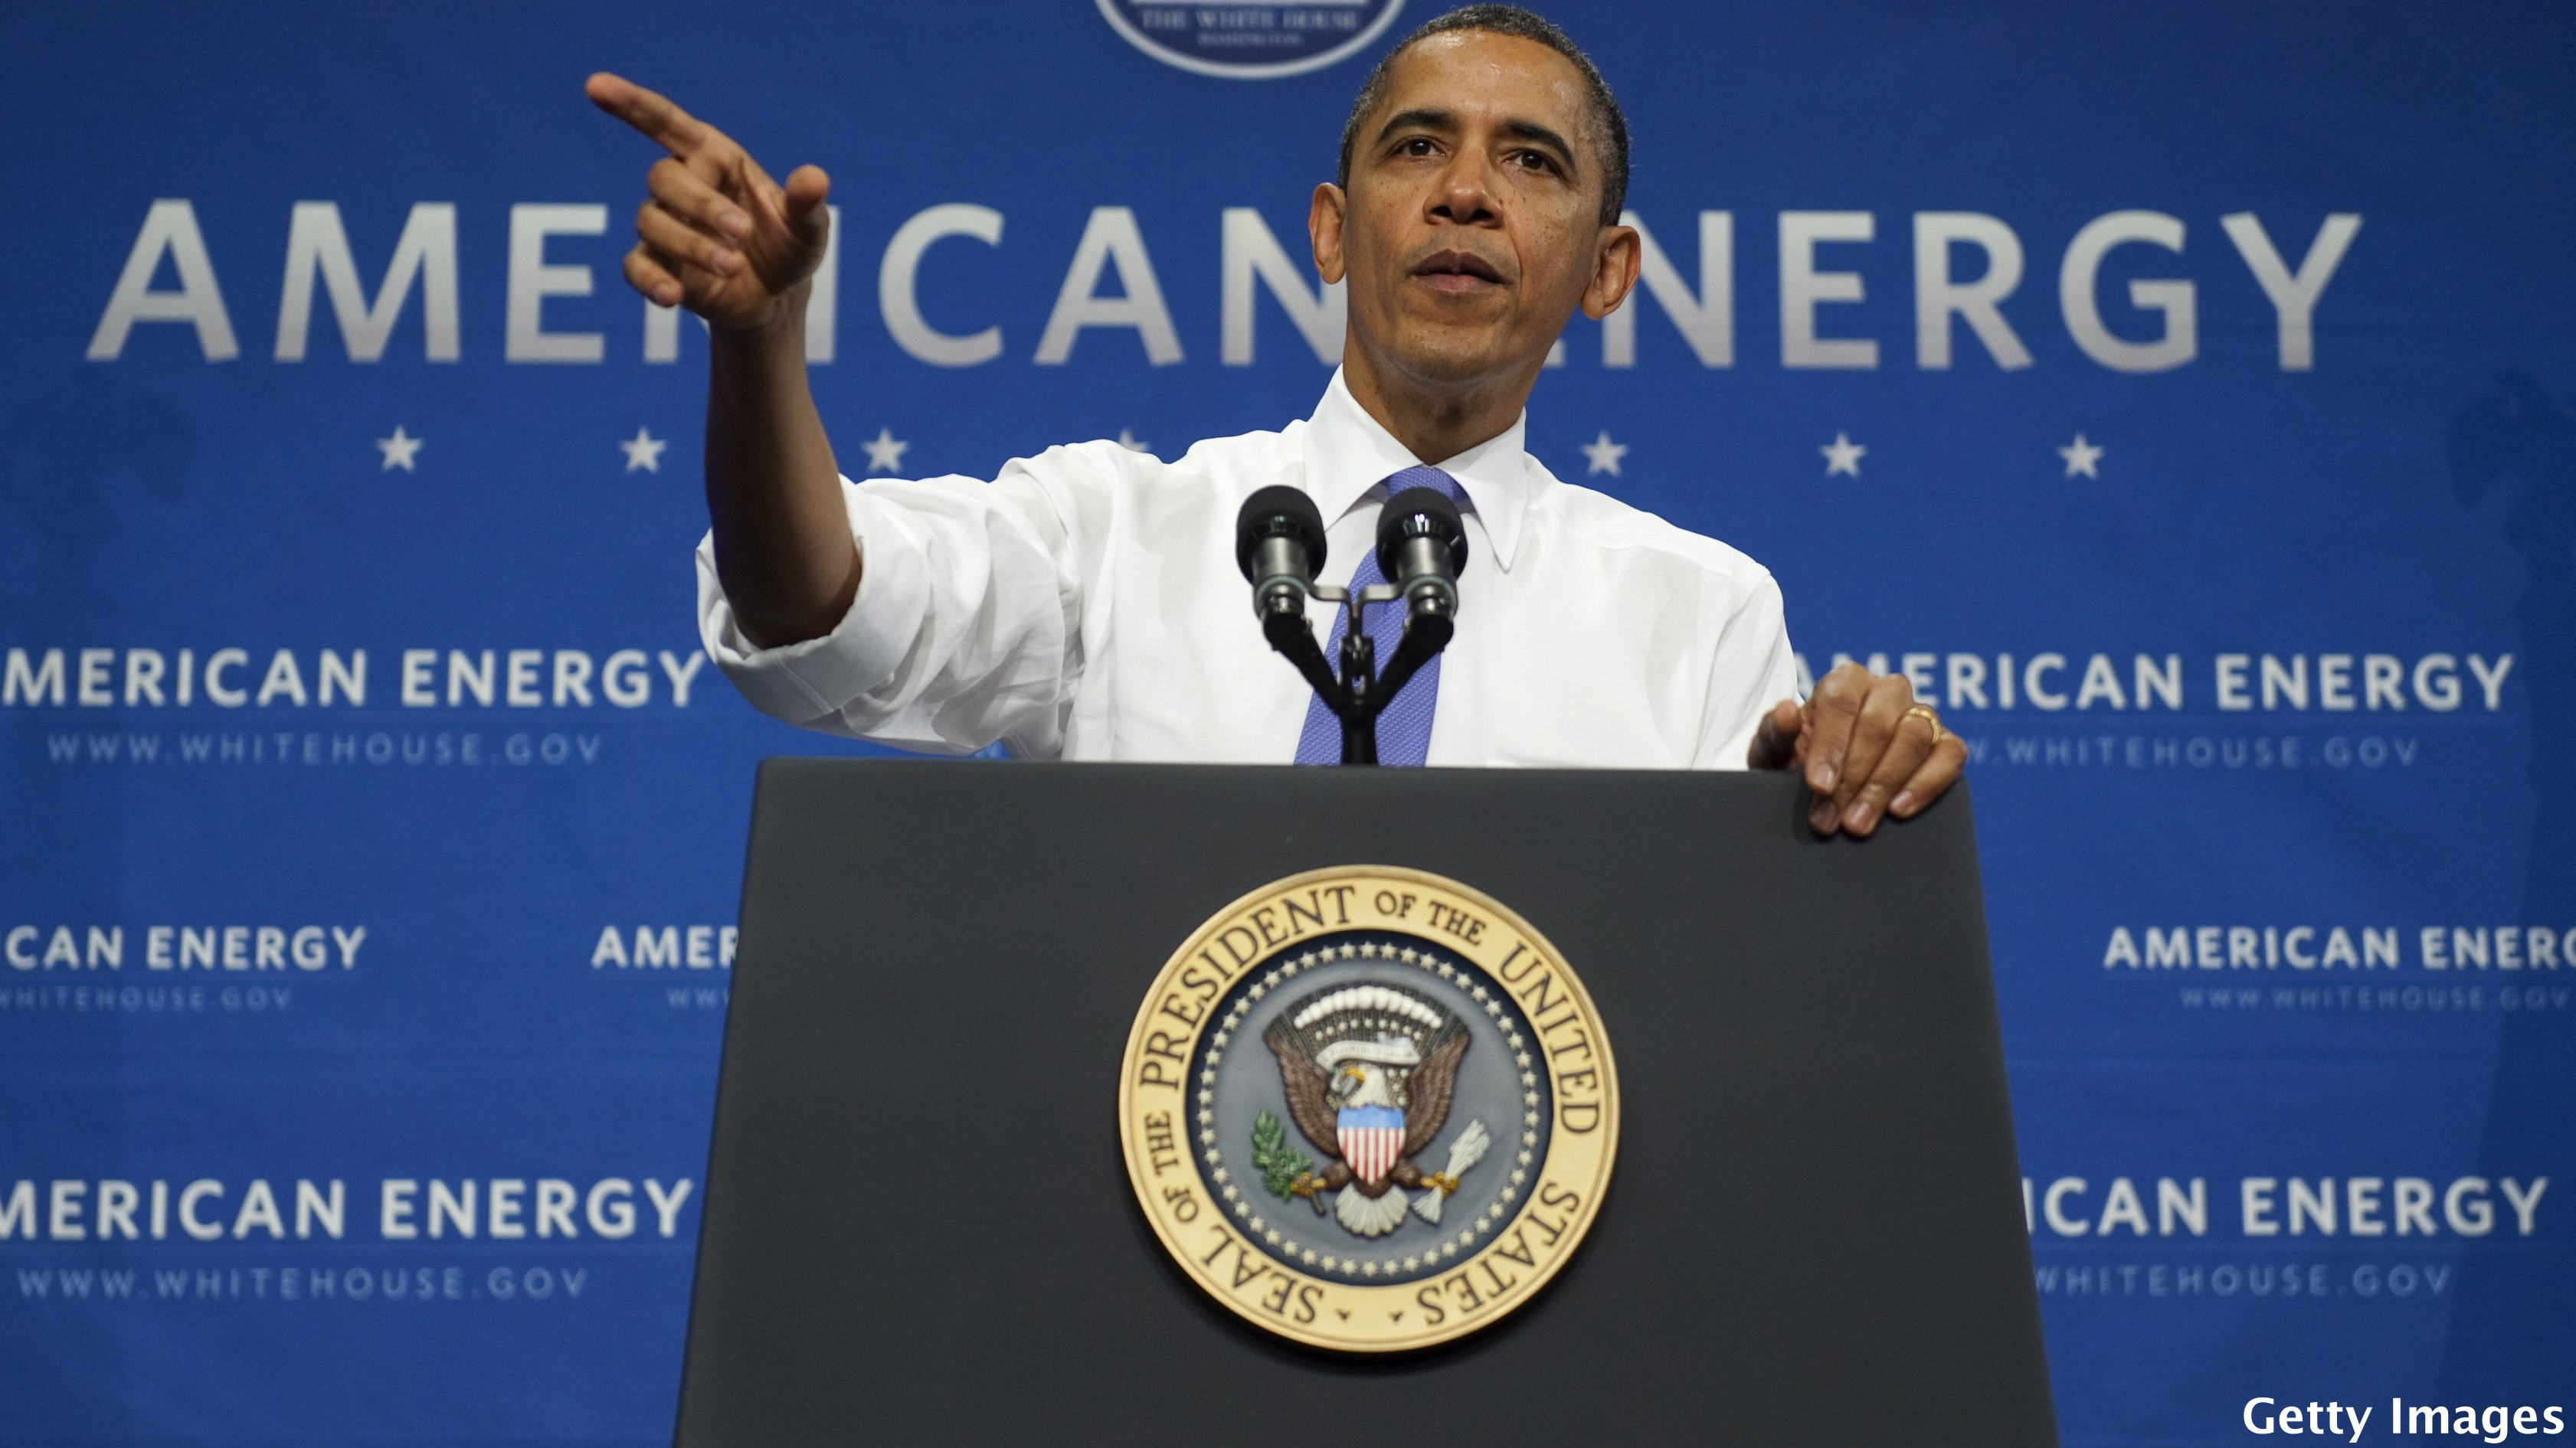 Obama calls for Congress vote on oil subsidies